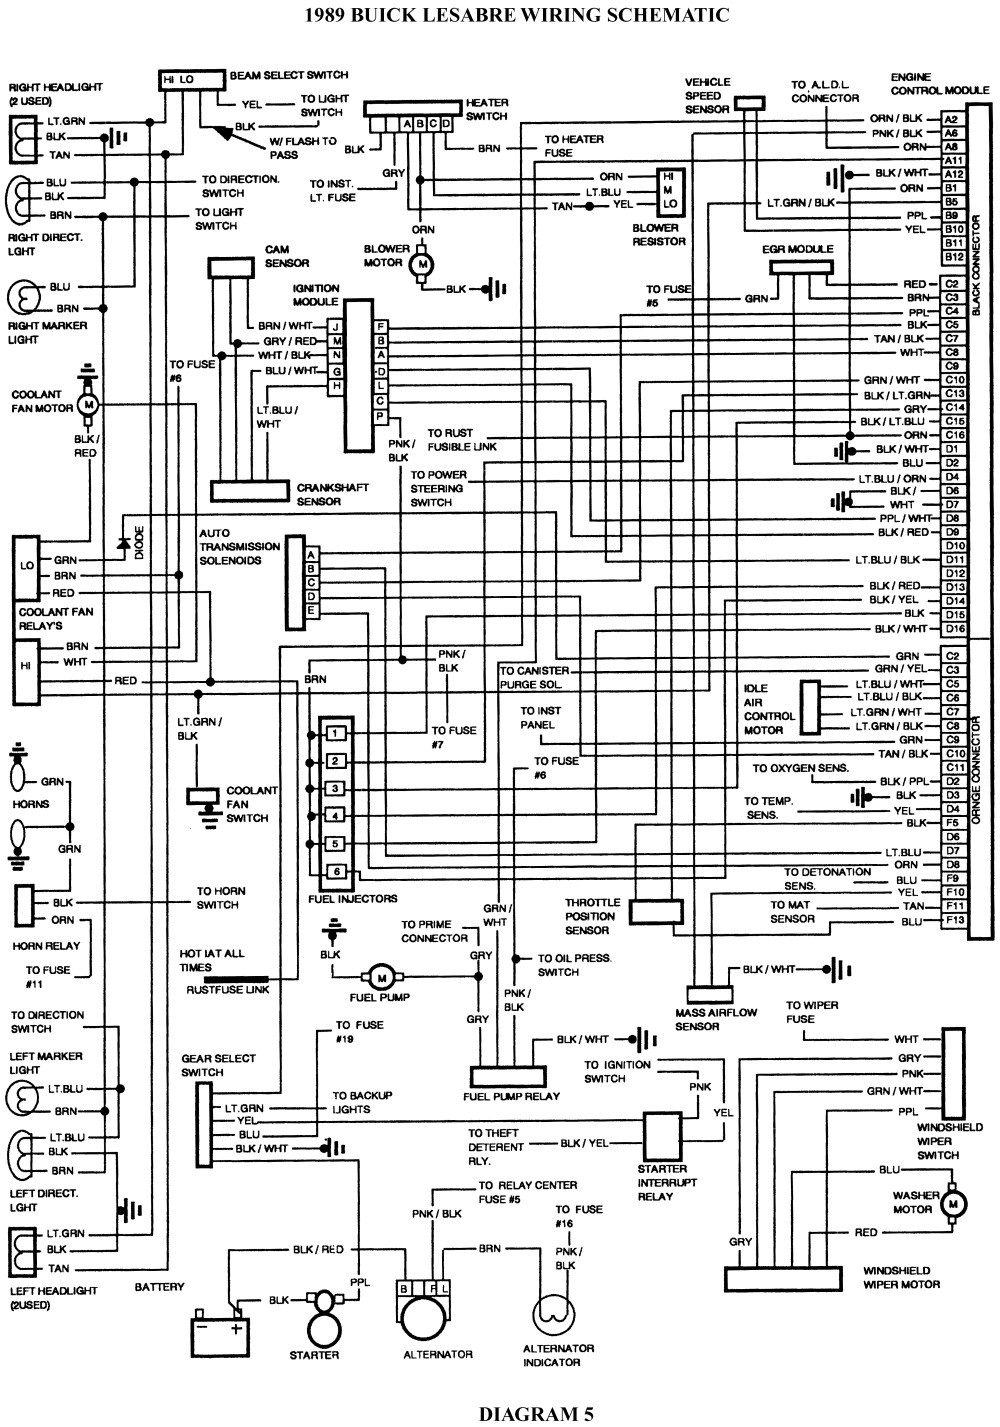 Diagram Buick Car Radio Stereo Audio Wiring Diagram Autoradio